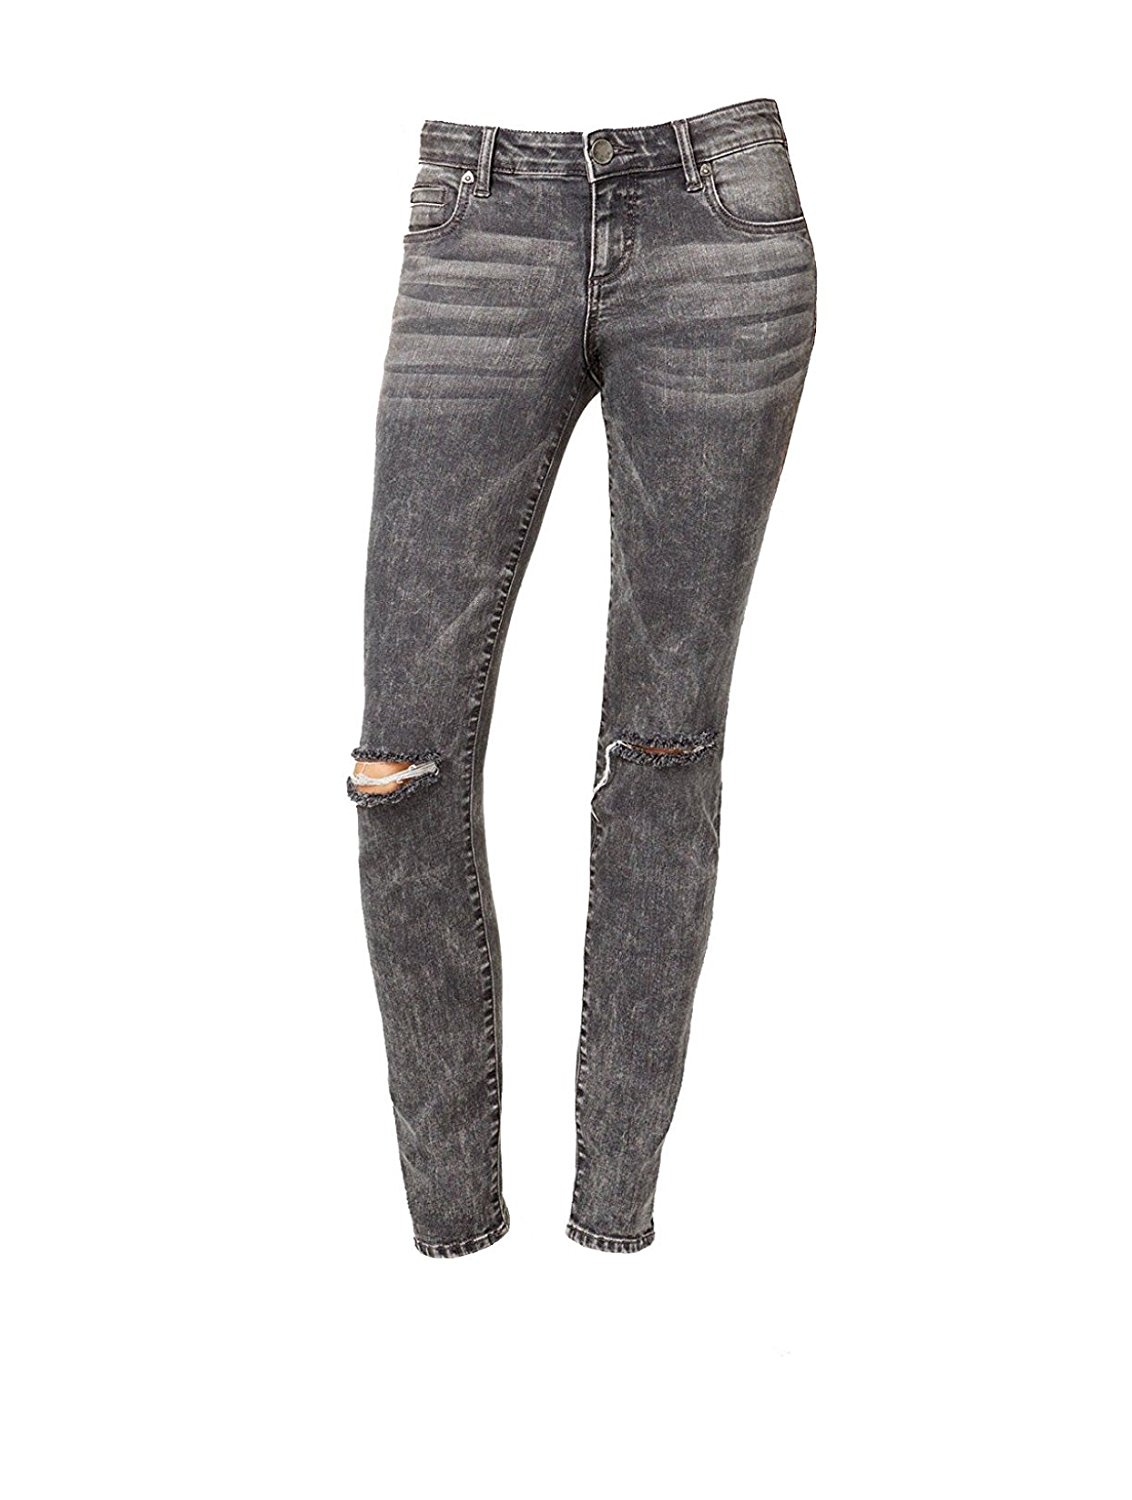 Kut from the Kloth Women's Diana Ripped Skinny Jeans (4, Grey)